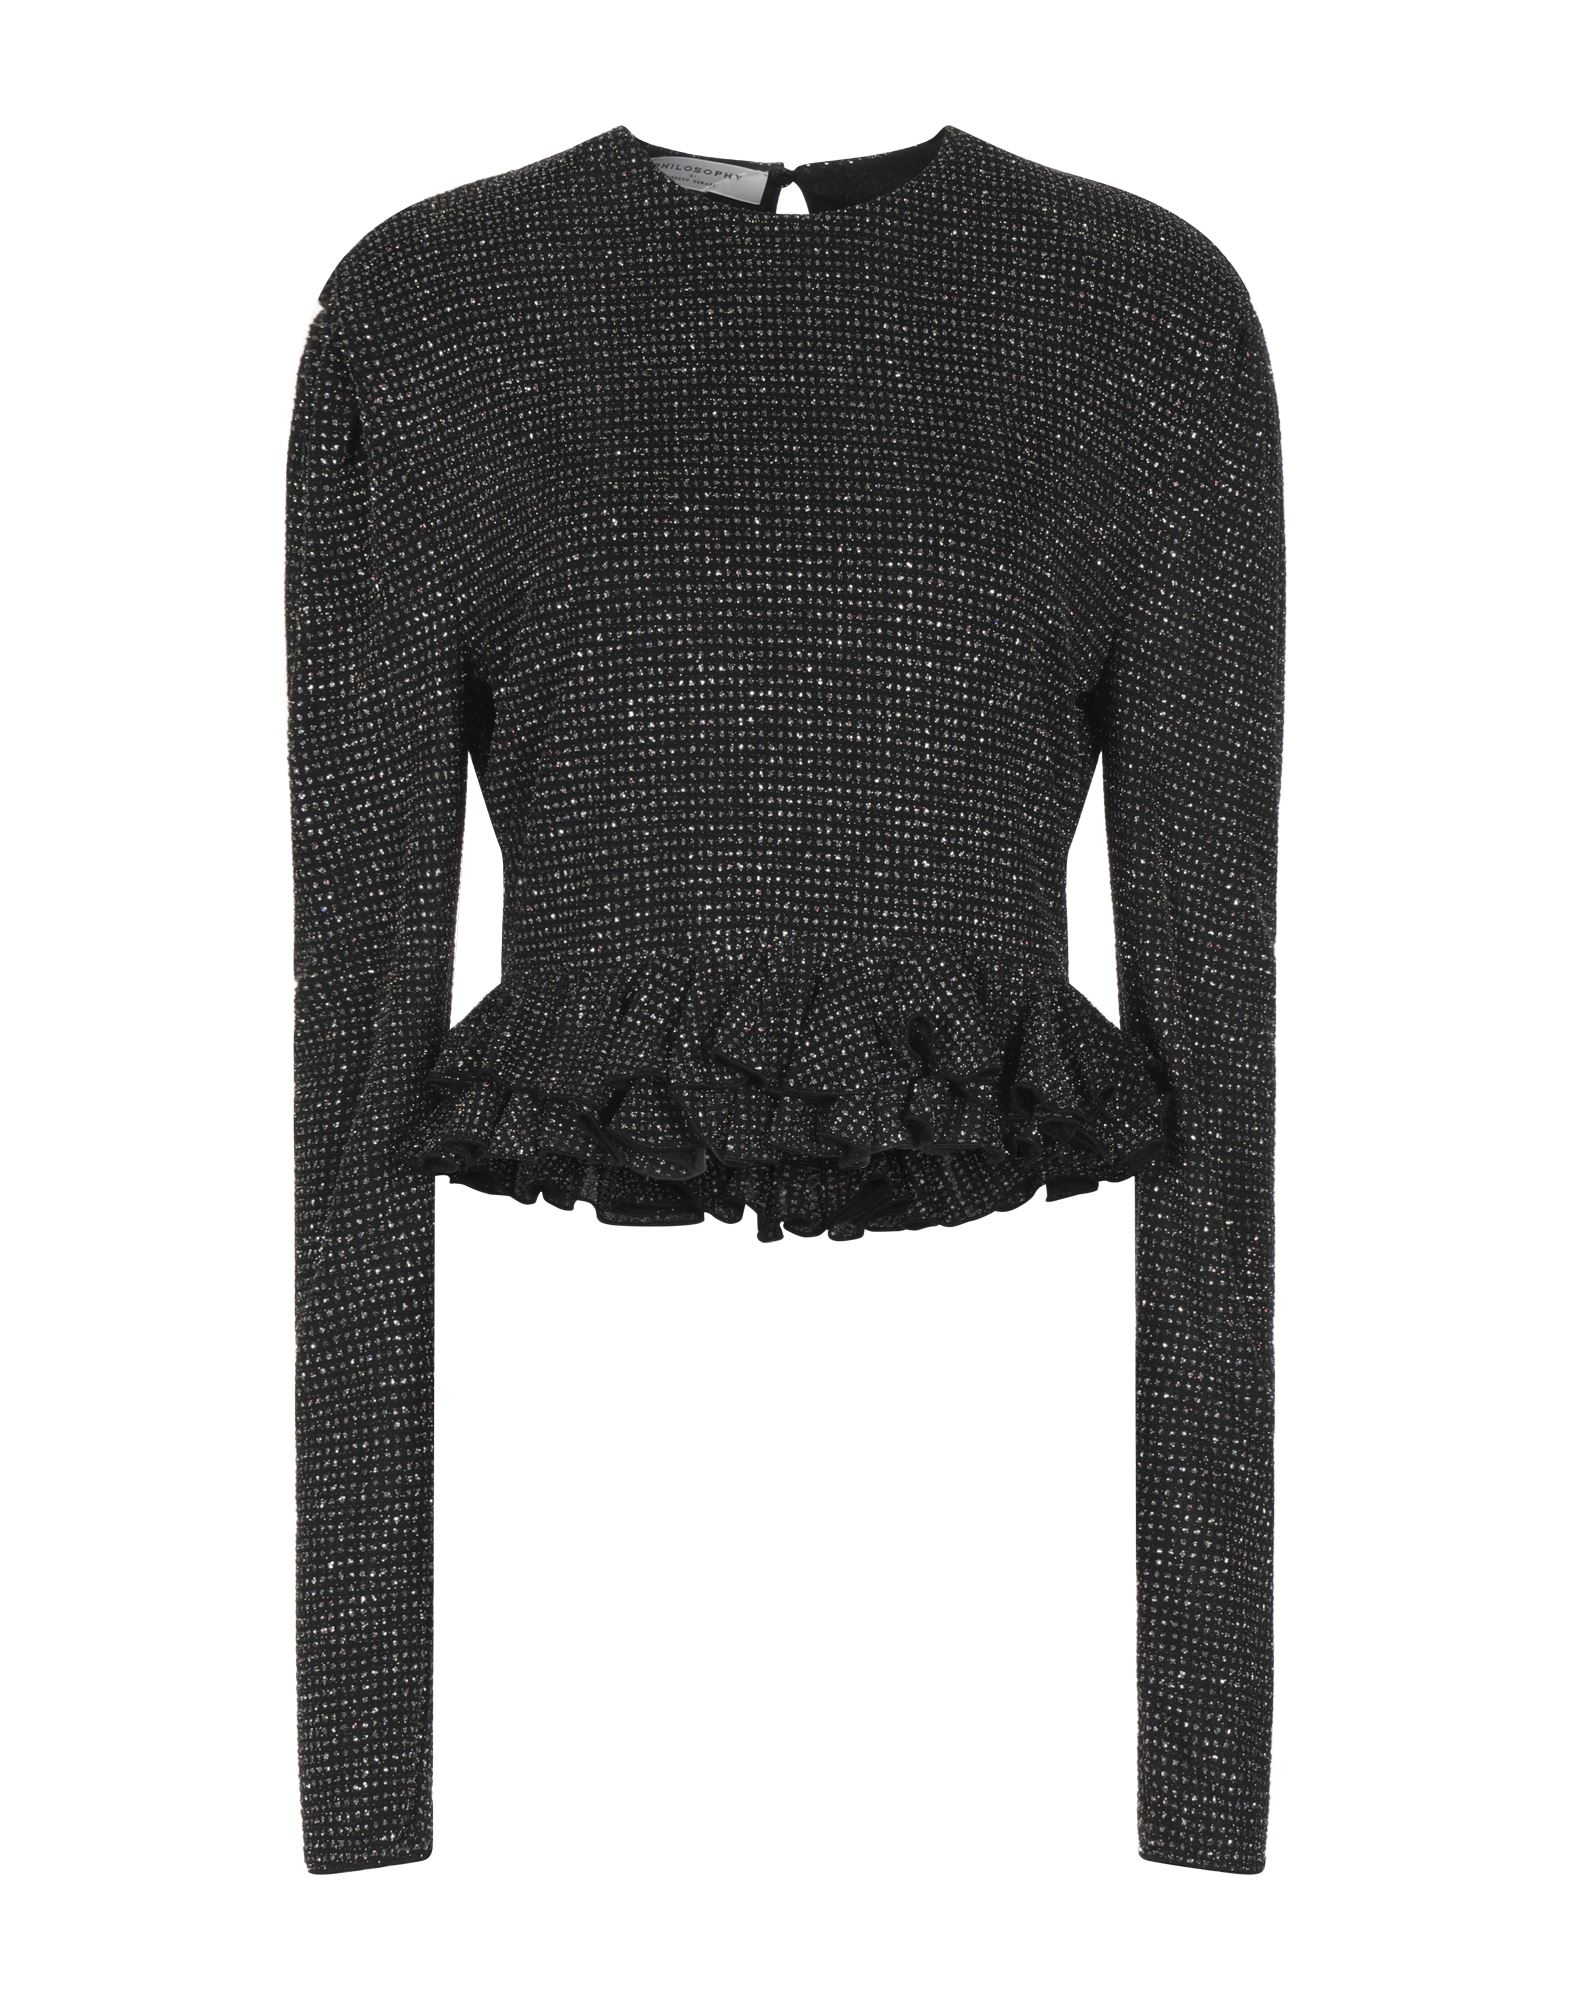 PHILOSOPHY di LORENZO SERAFINI Sweaters. knitted, lamé, ruffles, lightweight knit, round collar, multicolor pattern, long sleeves, no pockets, fully lined, stretch. 91% Polyamide, 5% Elastane, 4% Metal